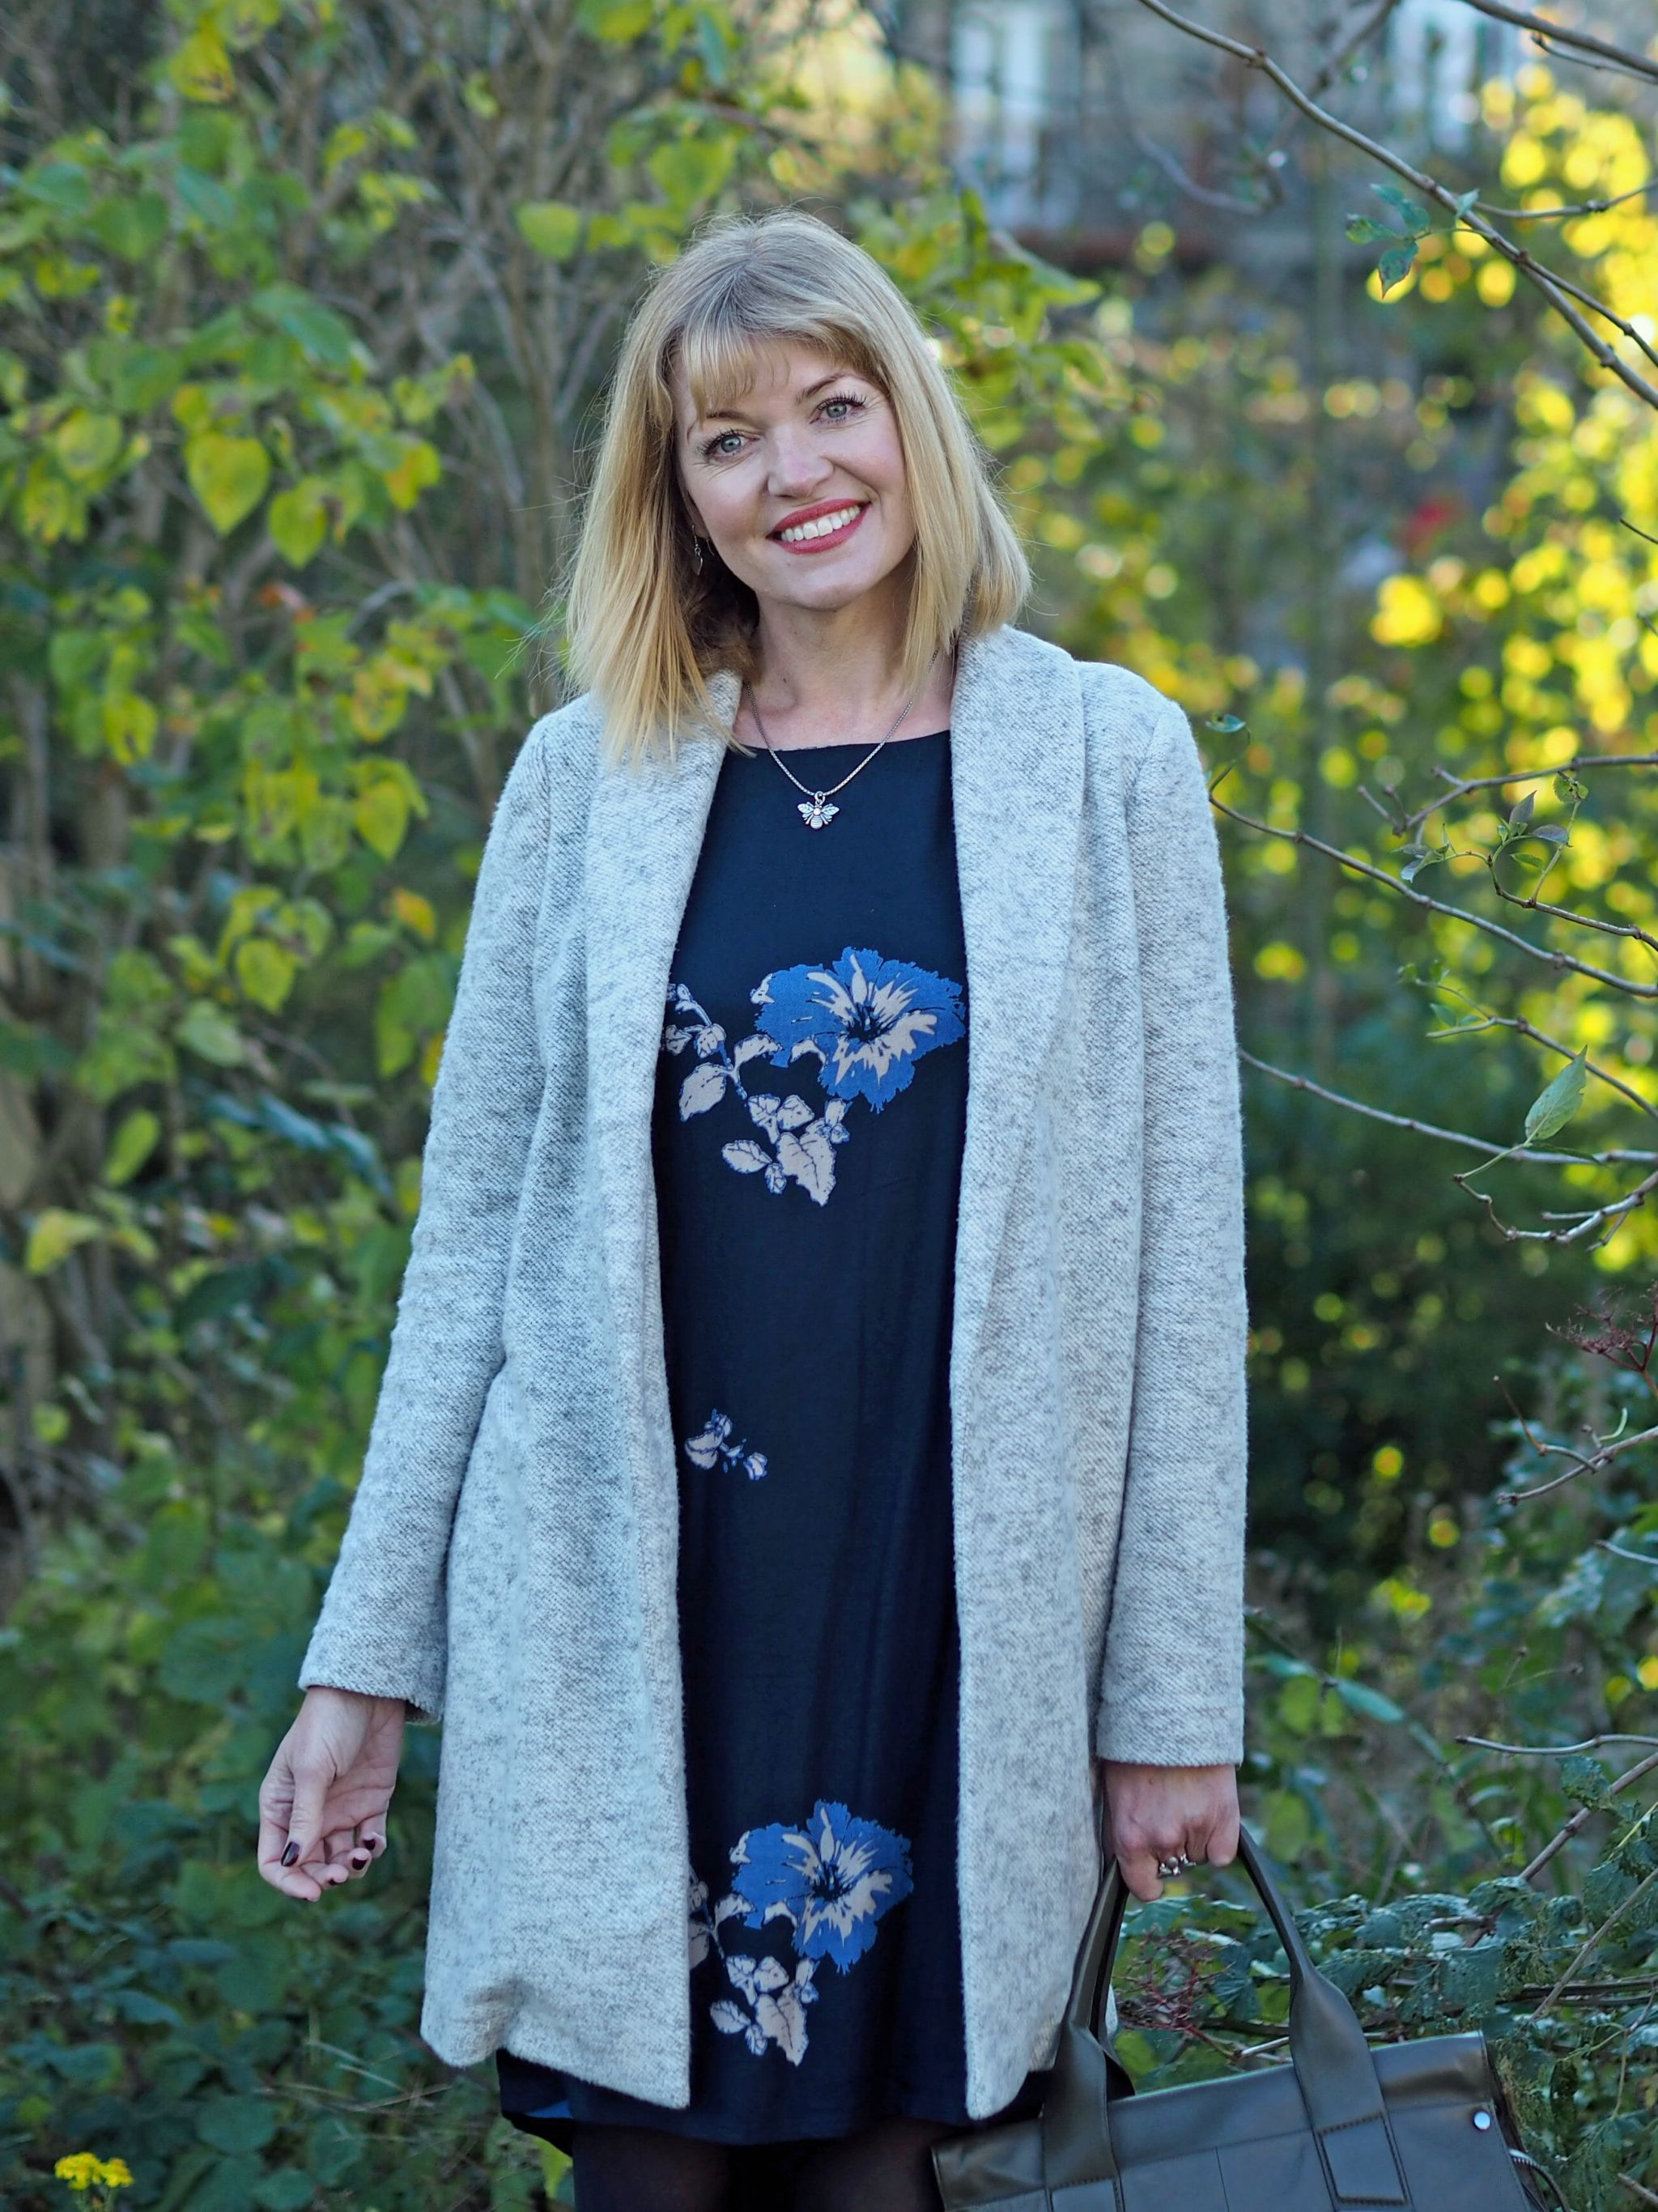 Floral Tunic Dress, Leopard Print Boots And Bee Jewellery.